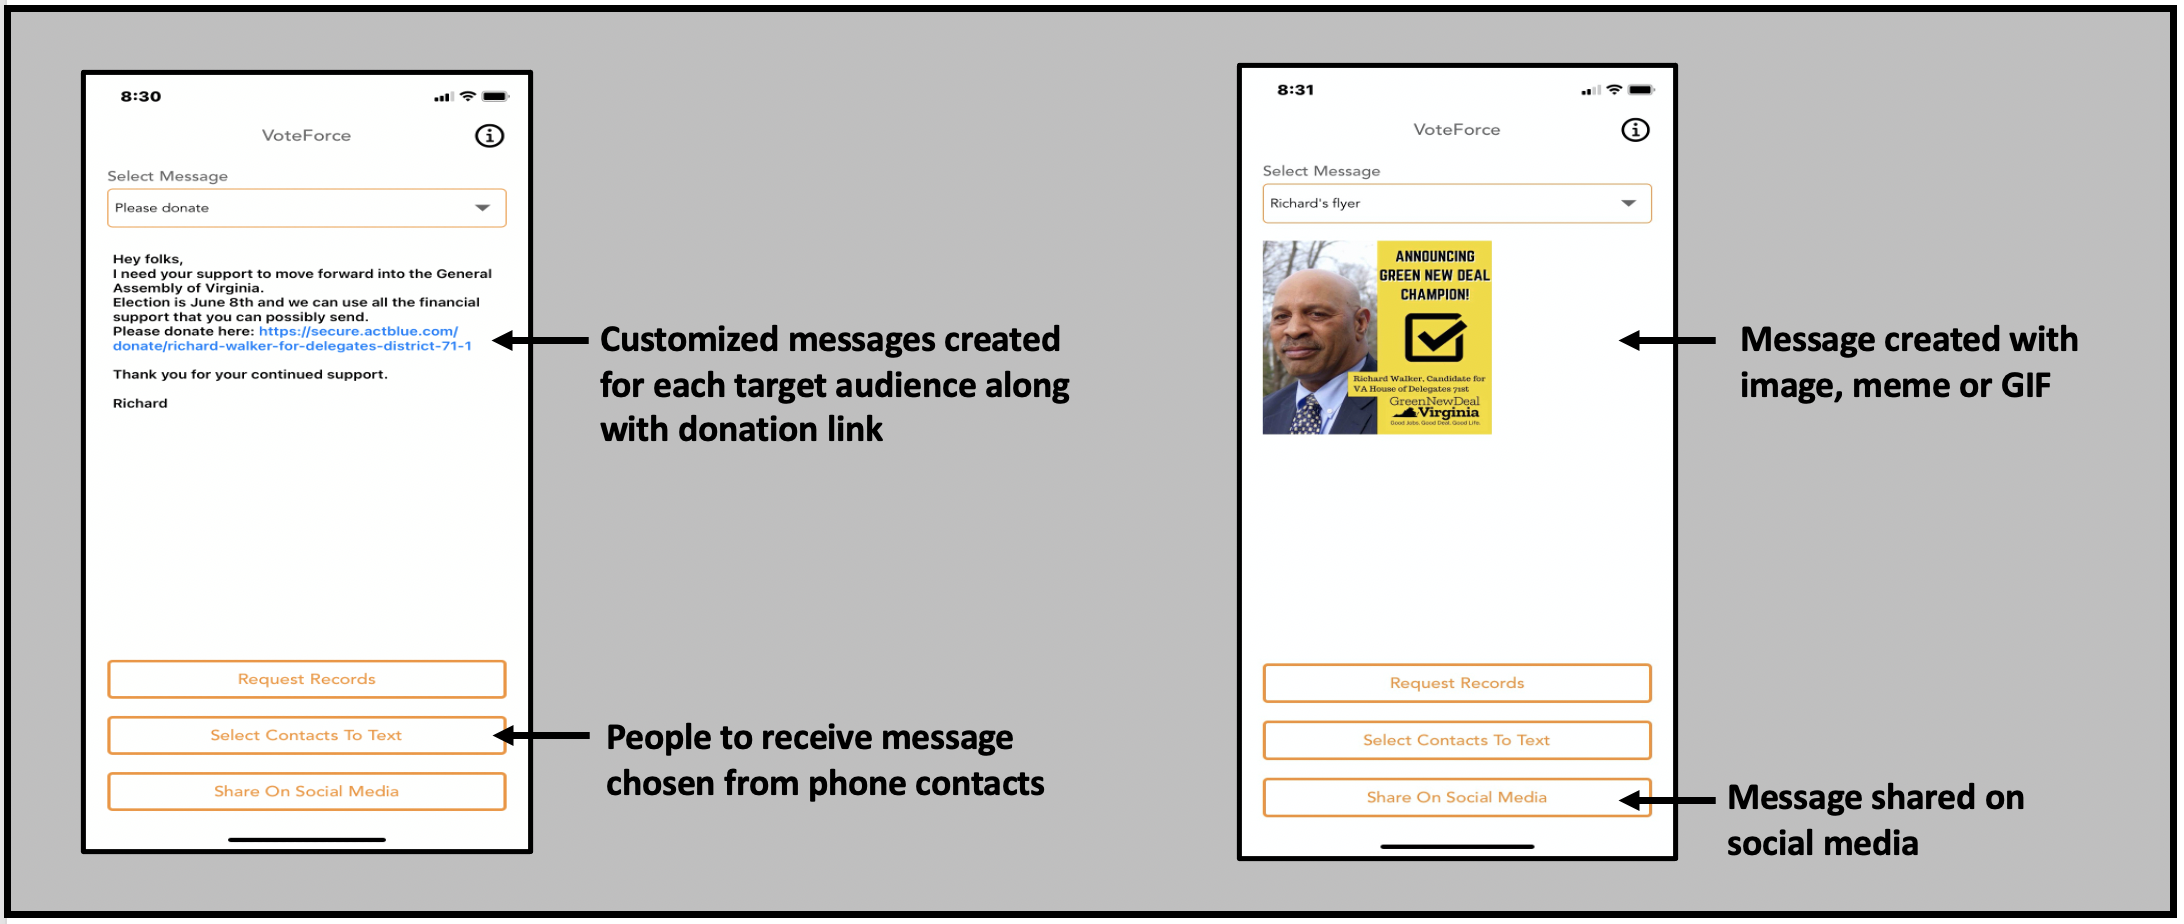 VoteForce creates customized texts that can include both texts, images, GIFs and memes.